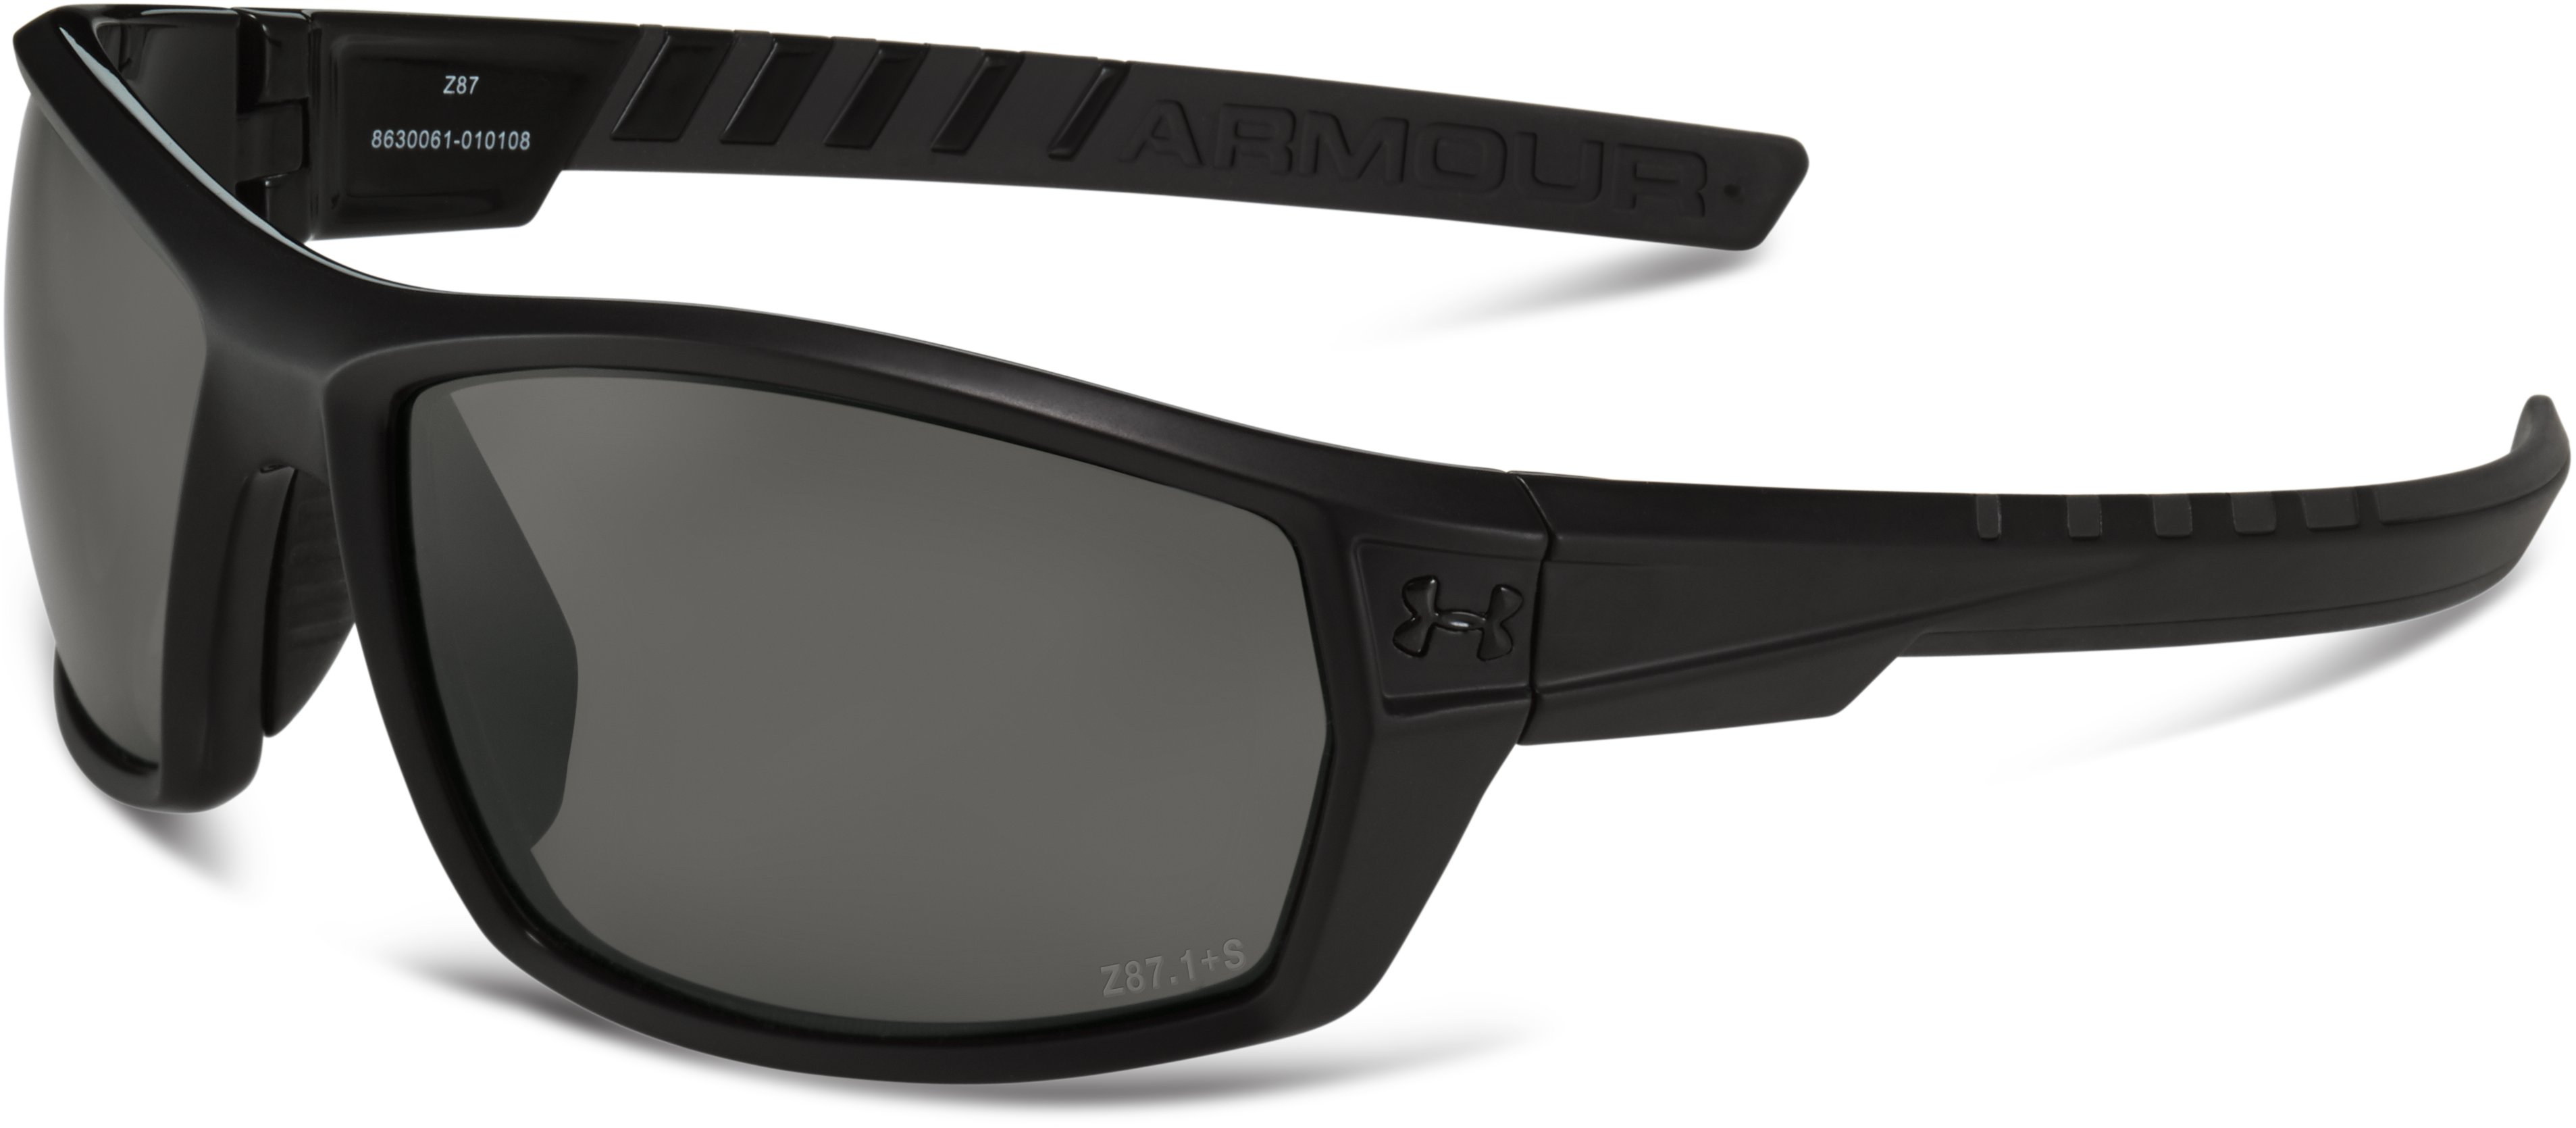 UA Ranger Storm Polarized Sunglasses, Satin Black